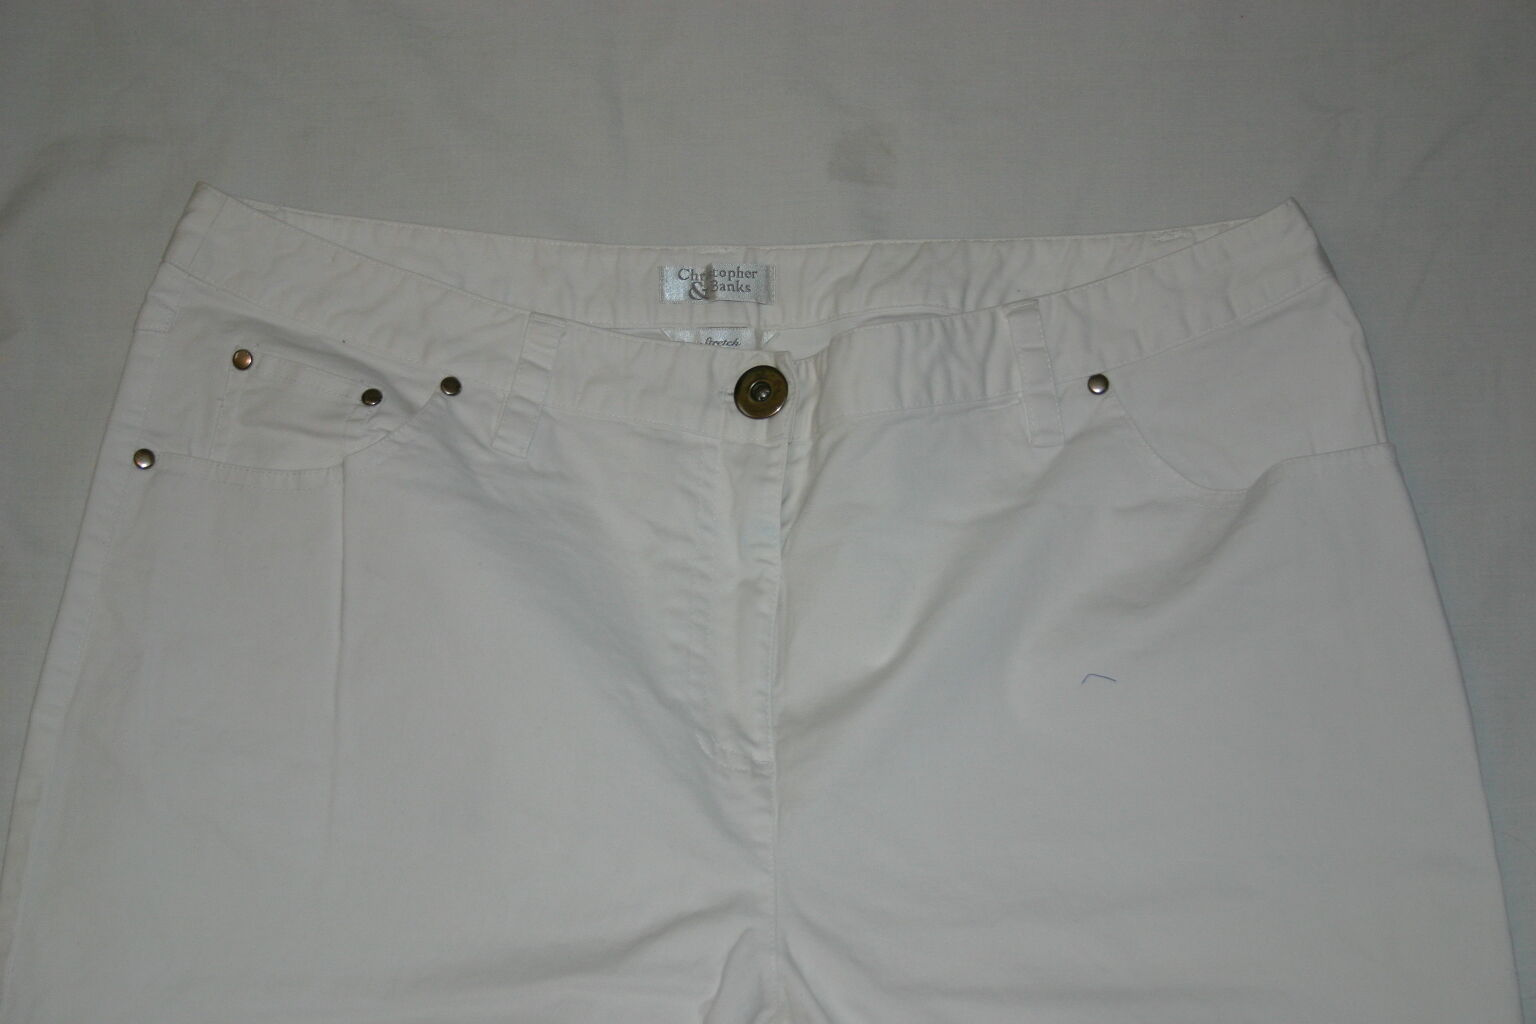 9b61eff4869 Christopher   Banks Women s Pants Size 16 White Inseam 30.5 Zipper Button  nuigkj3836-Pants